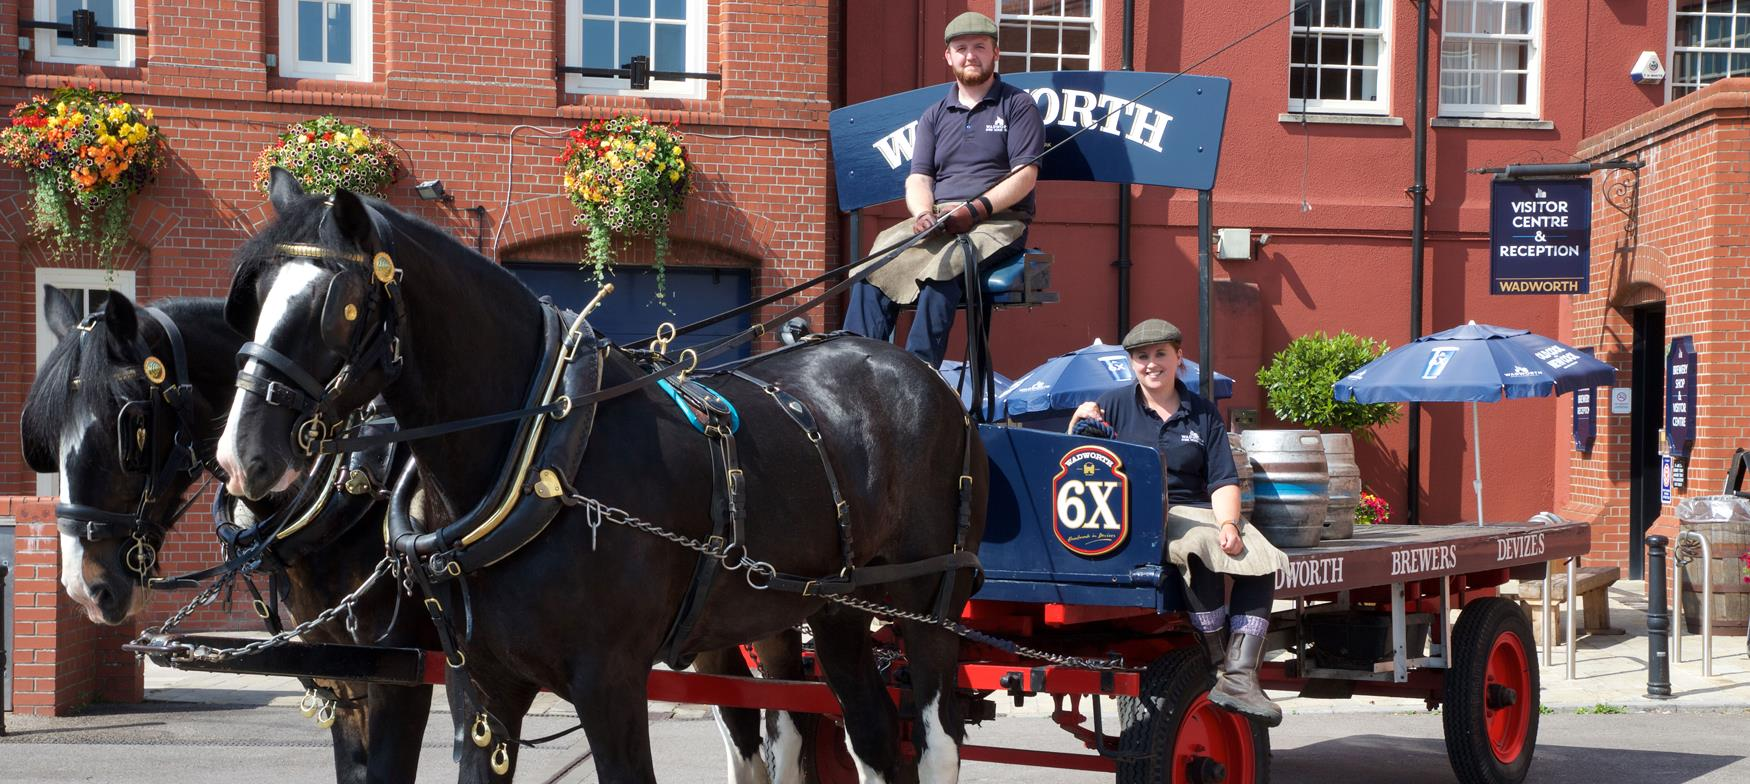 Horses with a cart at Wadworth Brewery